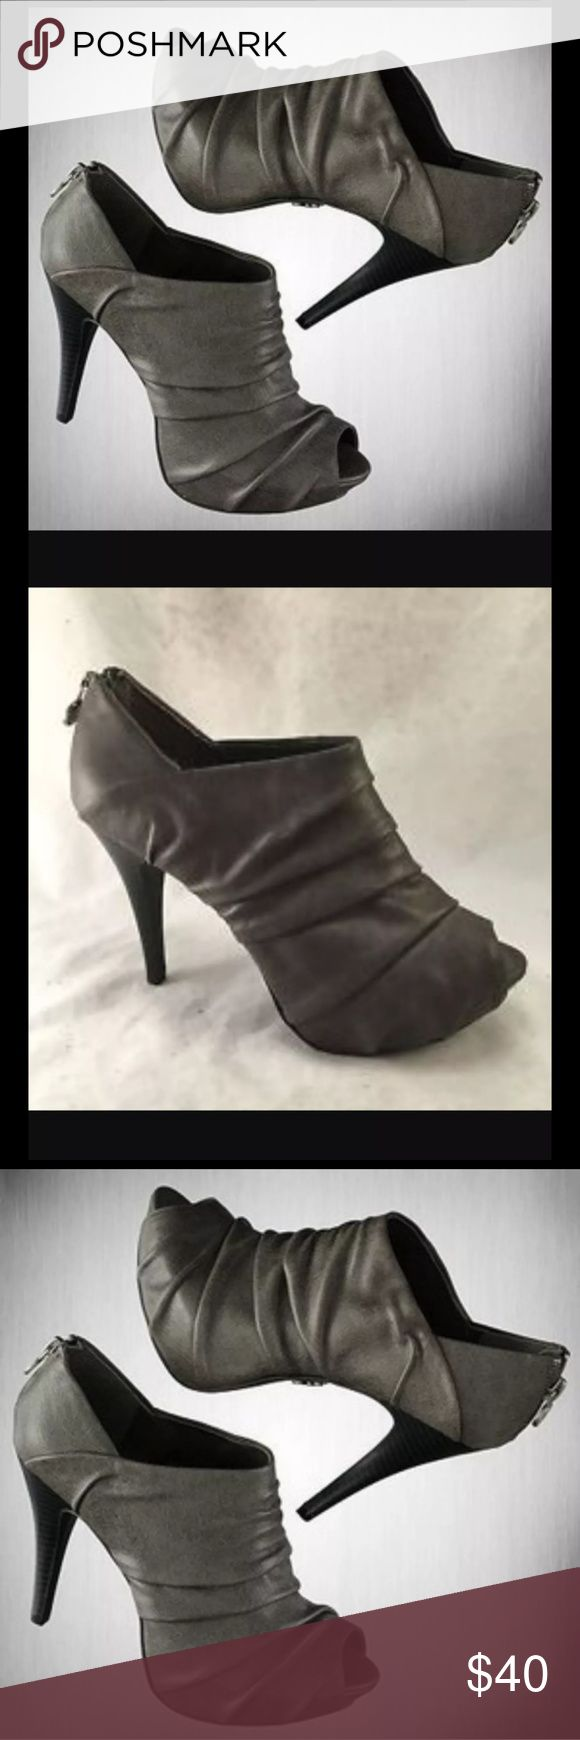 Simply Vera Wang peep Toed booties Stunning Vera Wang Savalle gray peep toe booties zips in back like new no box. Simply Vera Vera Wang Shoes Ankle Boots & Booties